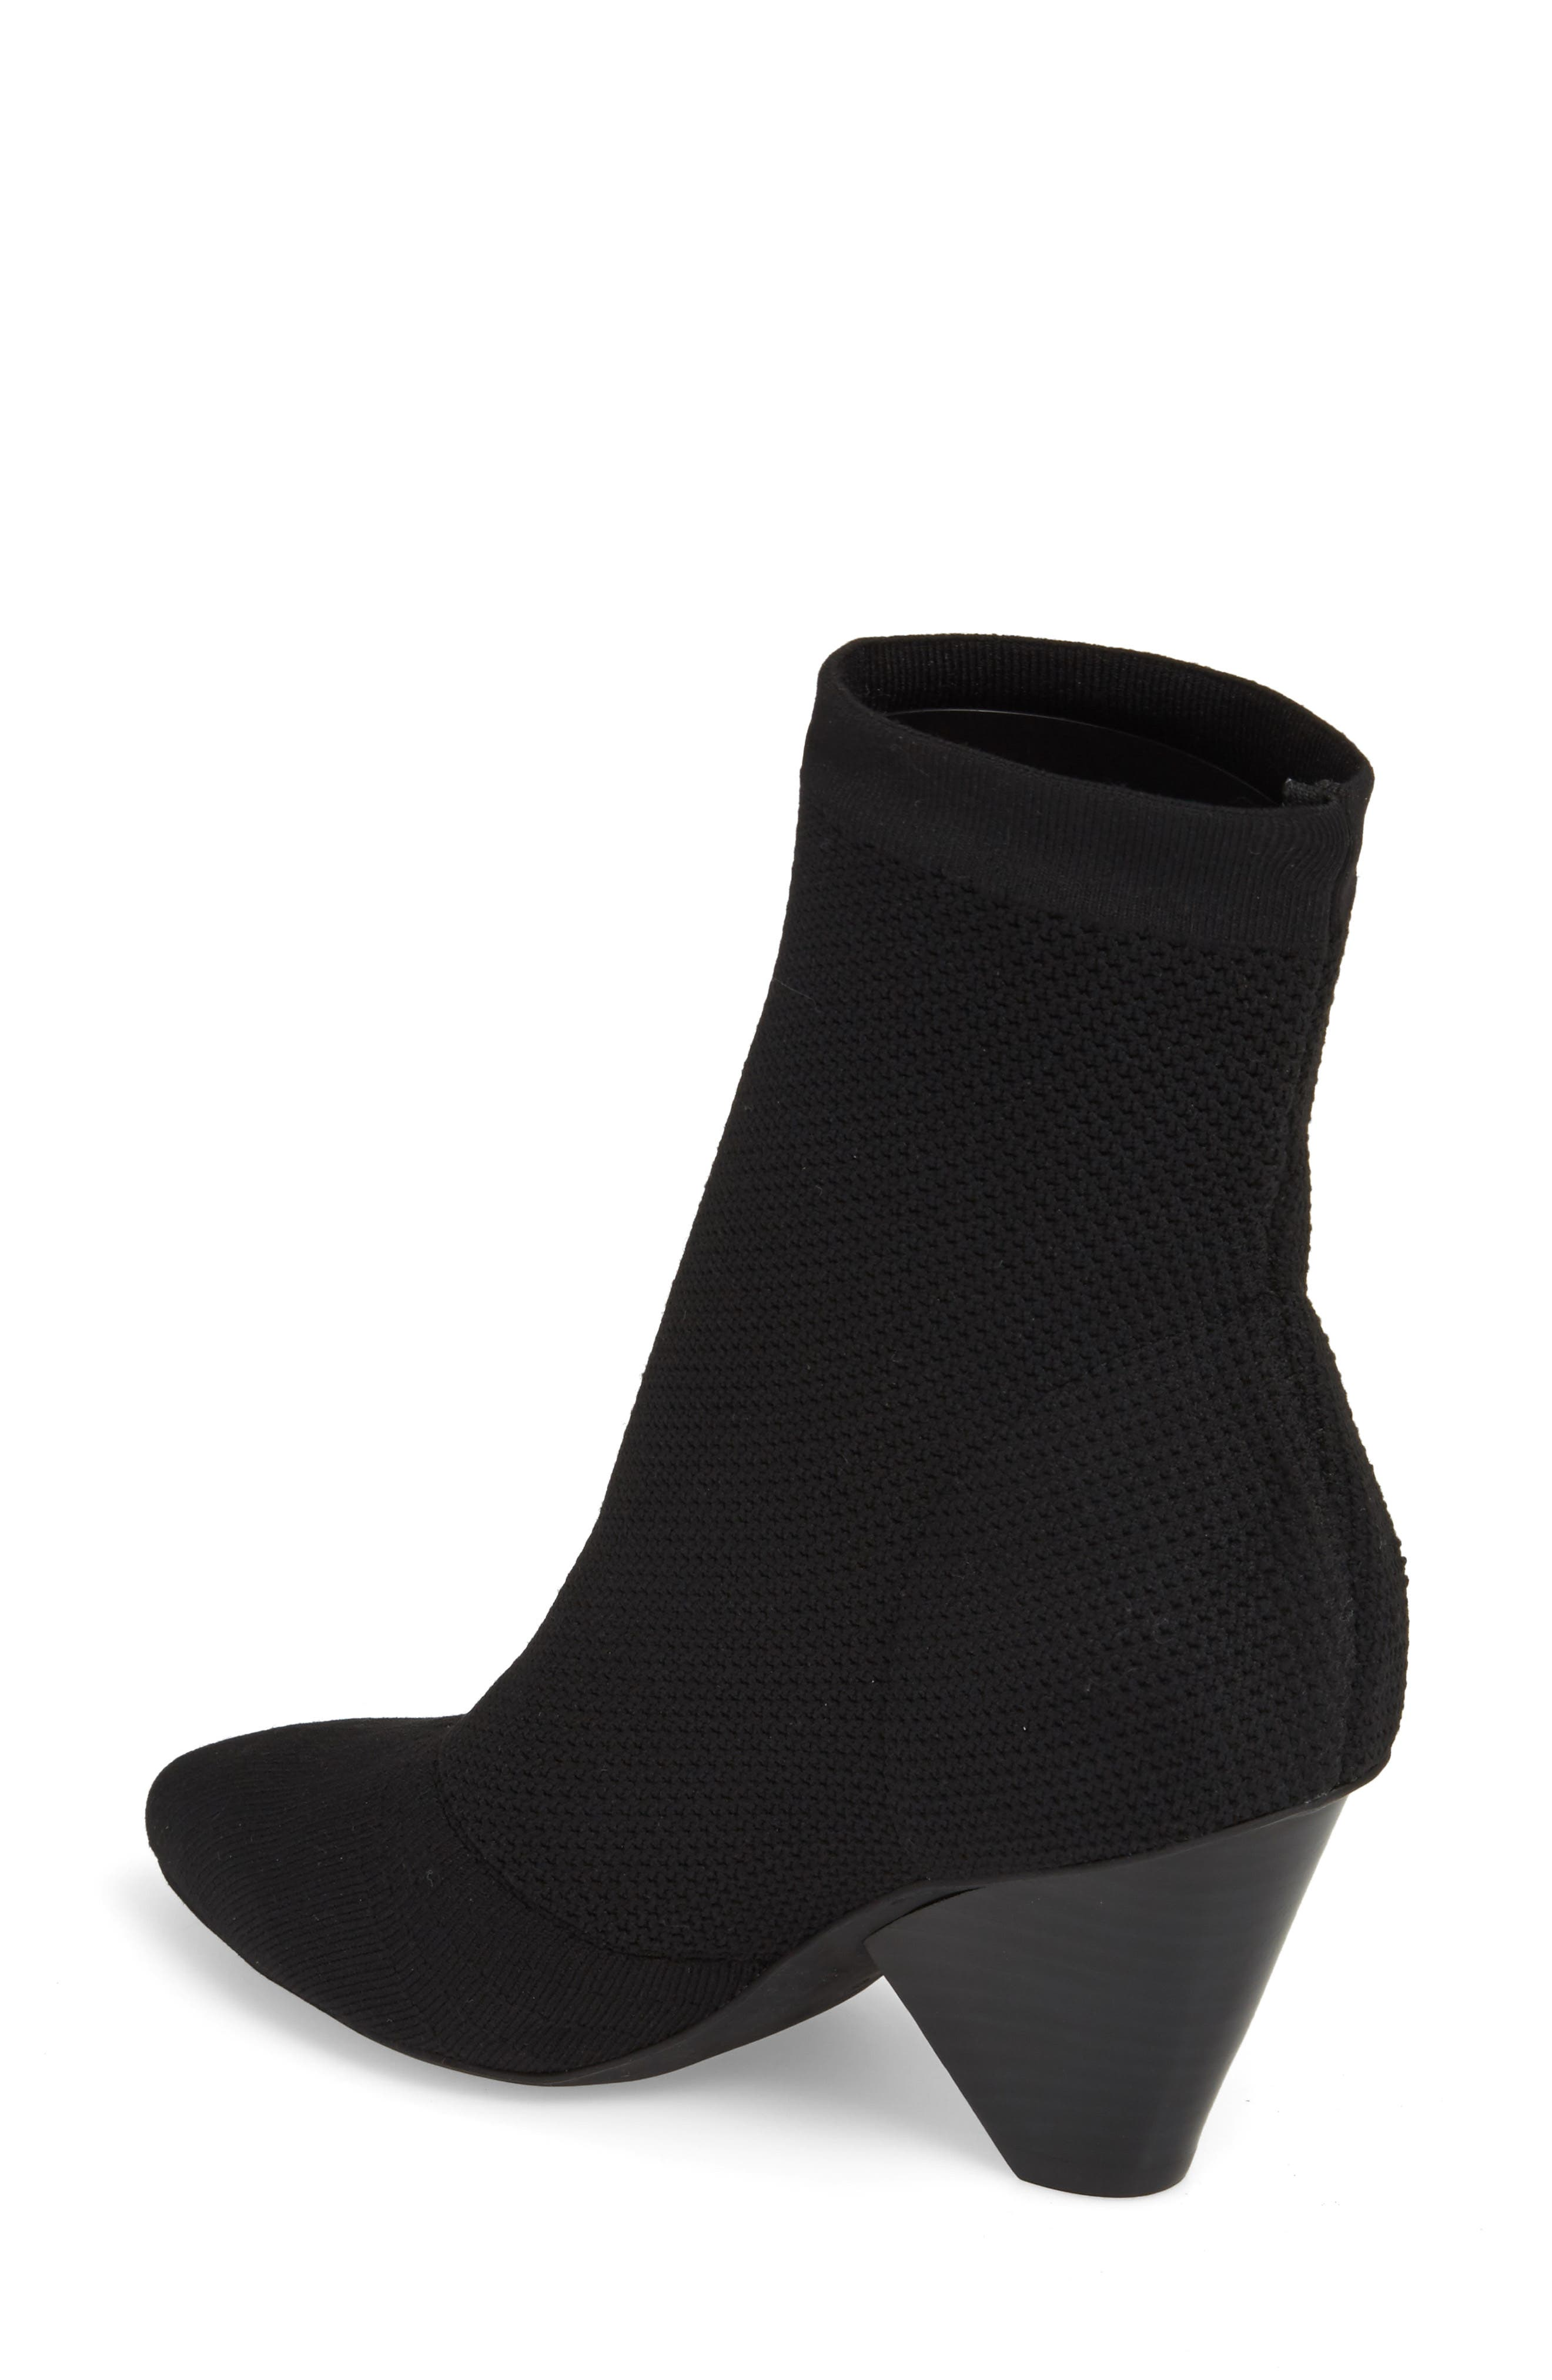 Acadia 2 Sock Bootie,                             Alternate thumbnail 2, color,                             Black Woven